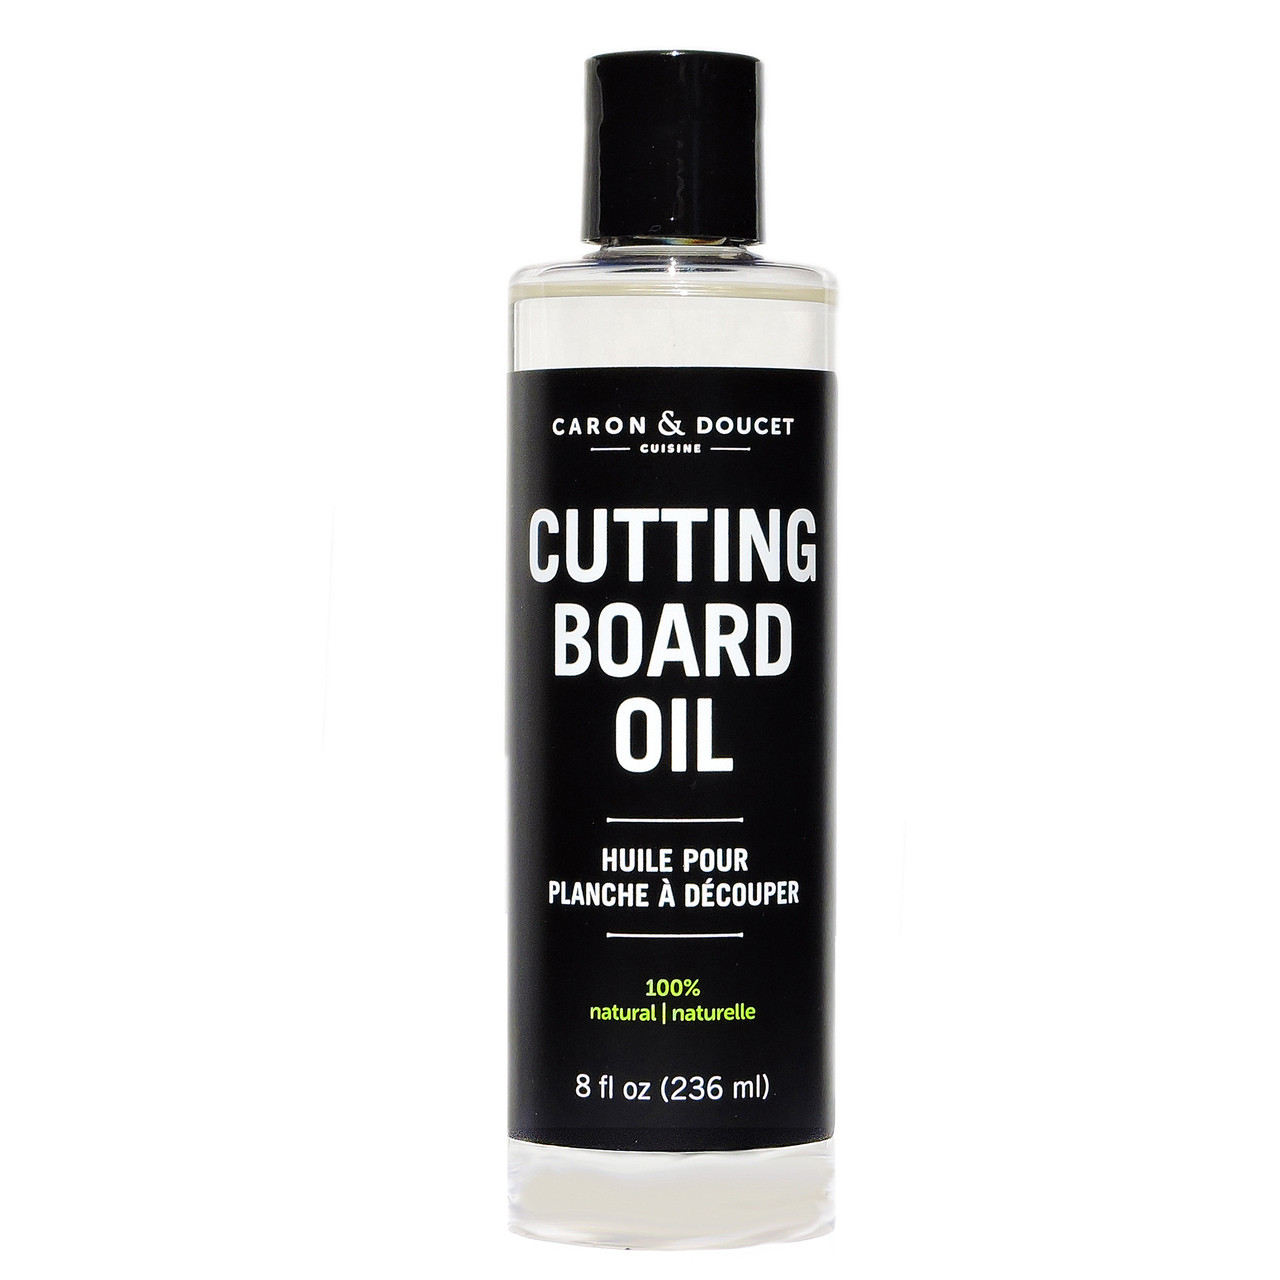 CARON & DOUCET - CUTTING BOARD OIL